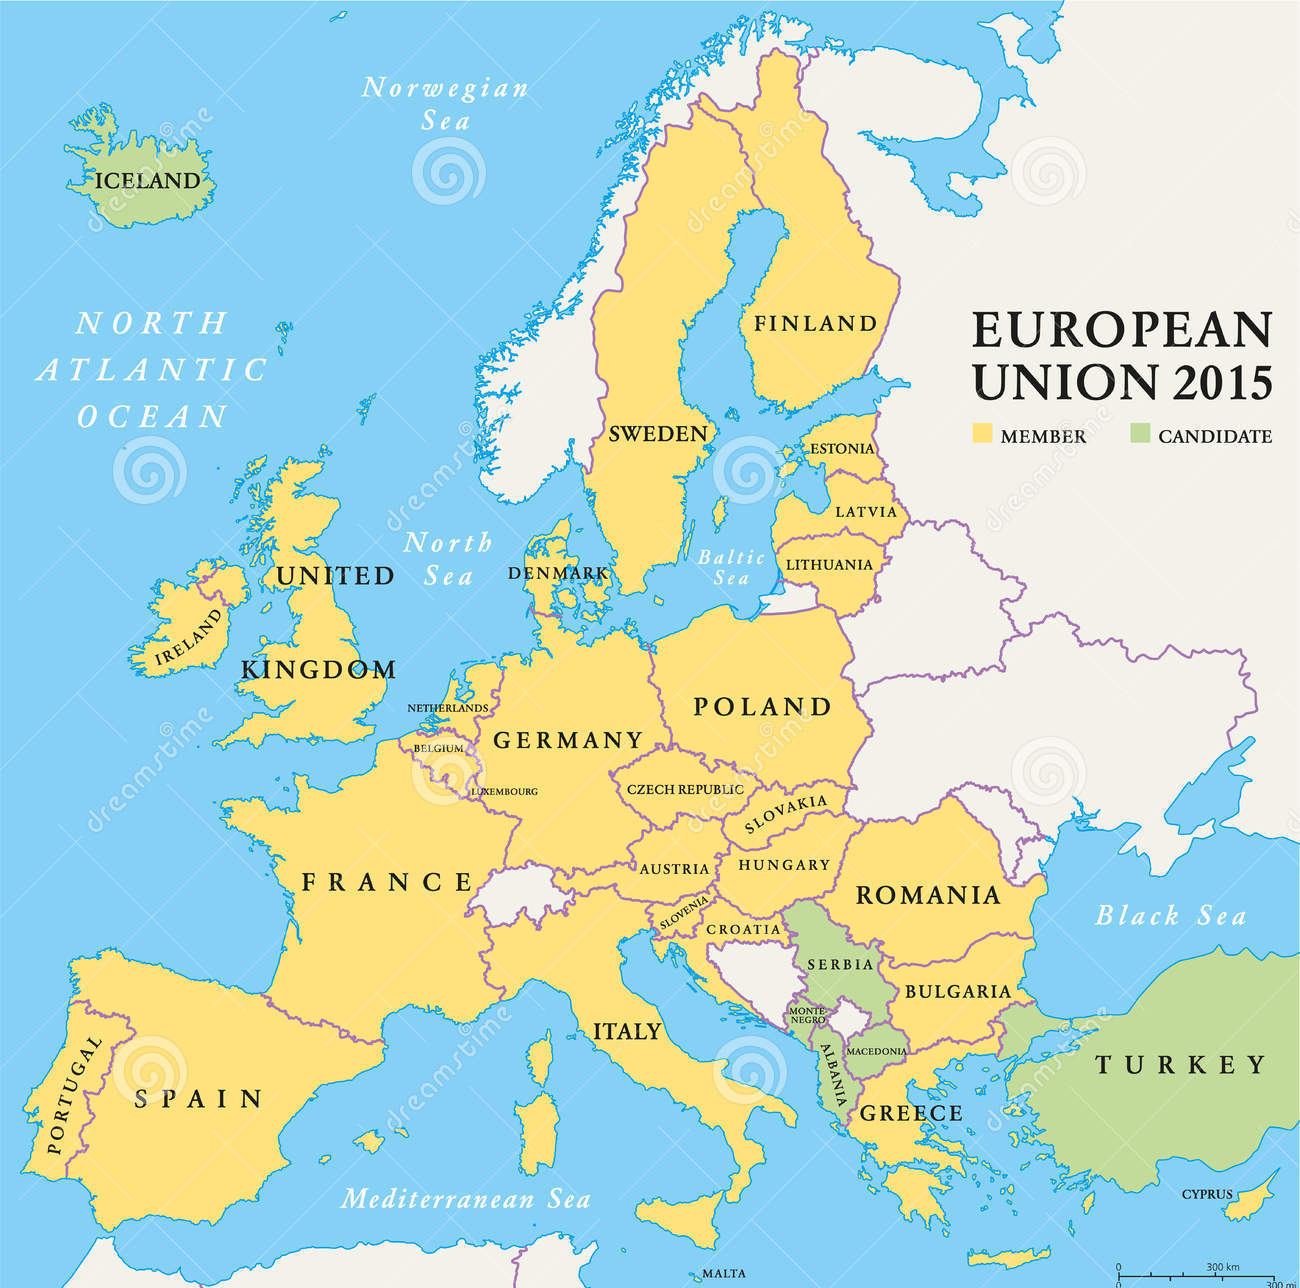 European Union Map 201515